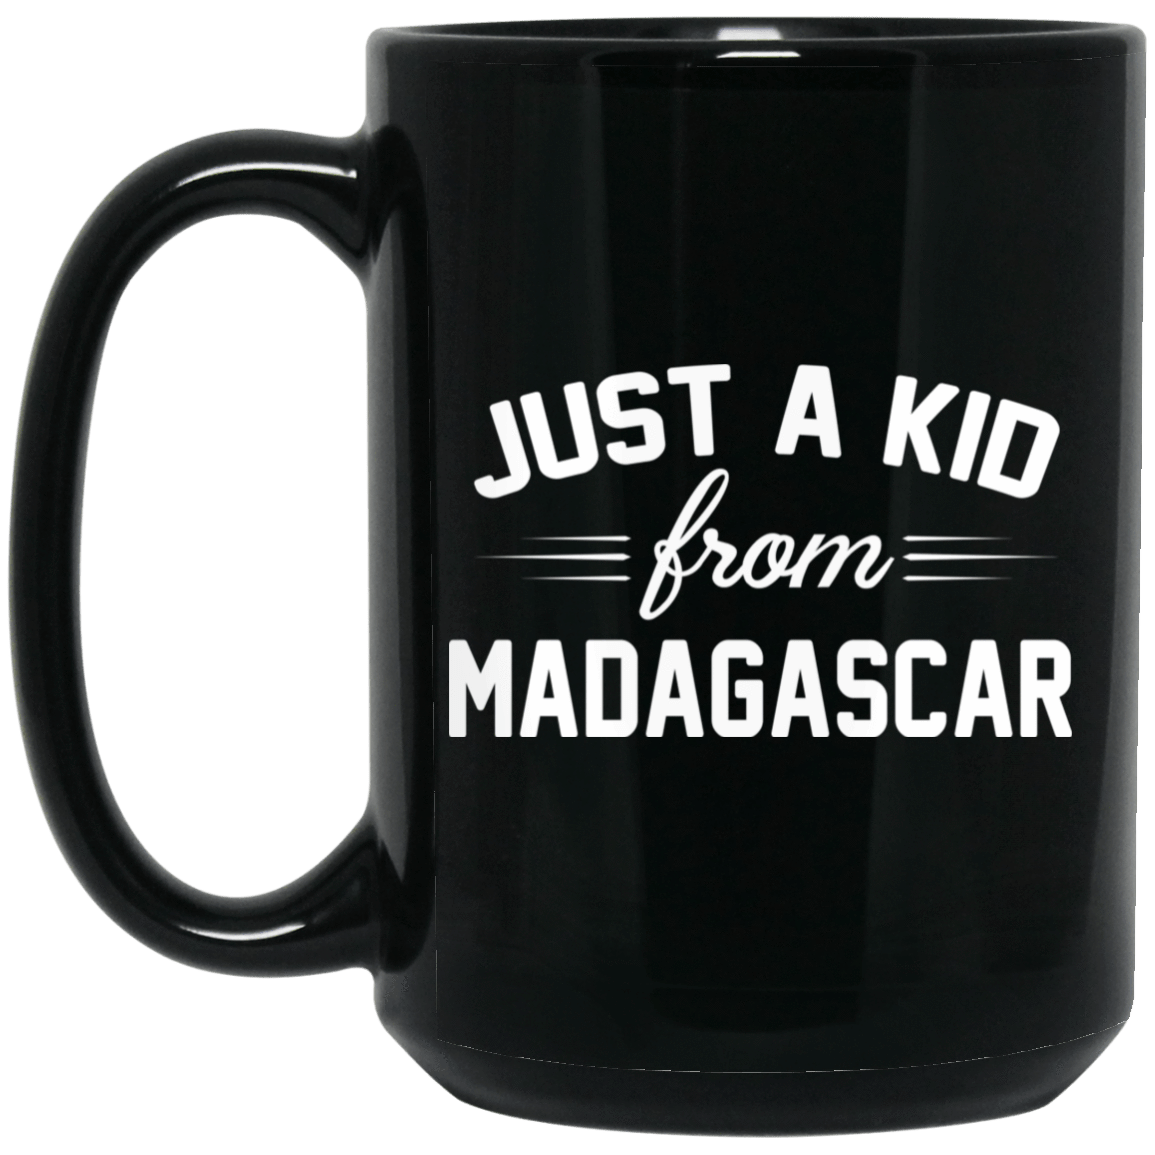 Just A Kid Store | Madagascar Mug 1066-10182-72111196-49311 - Tee Ript